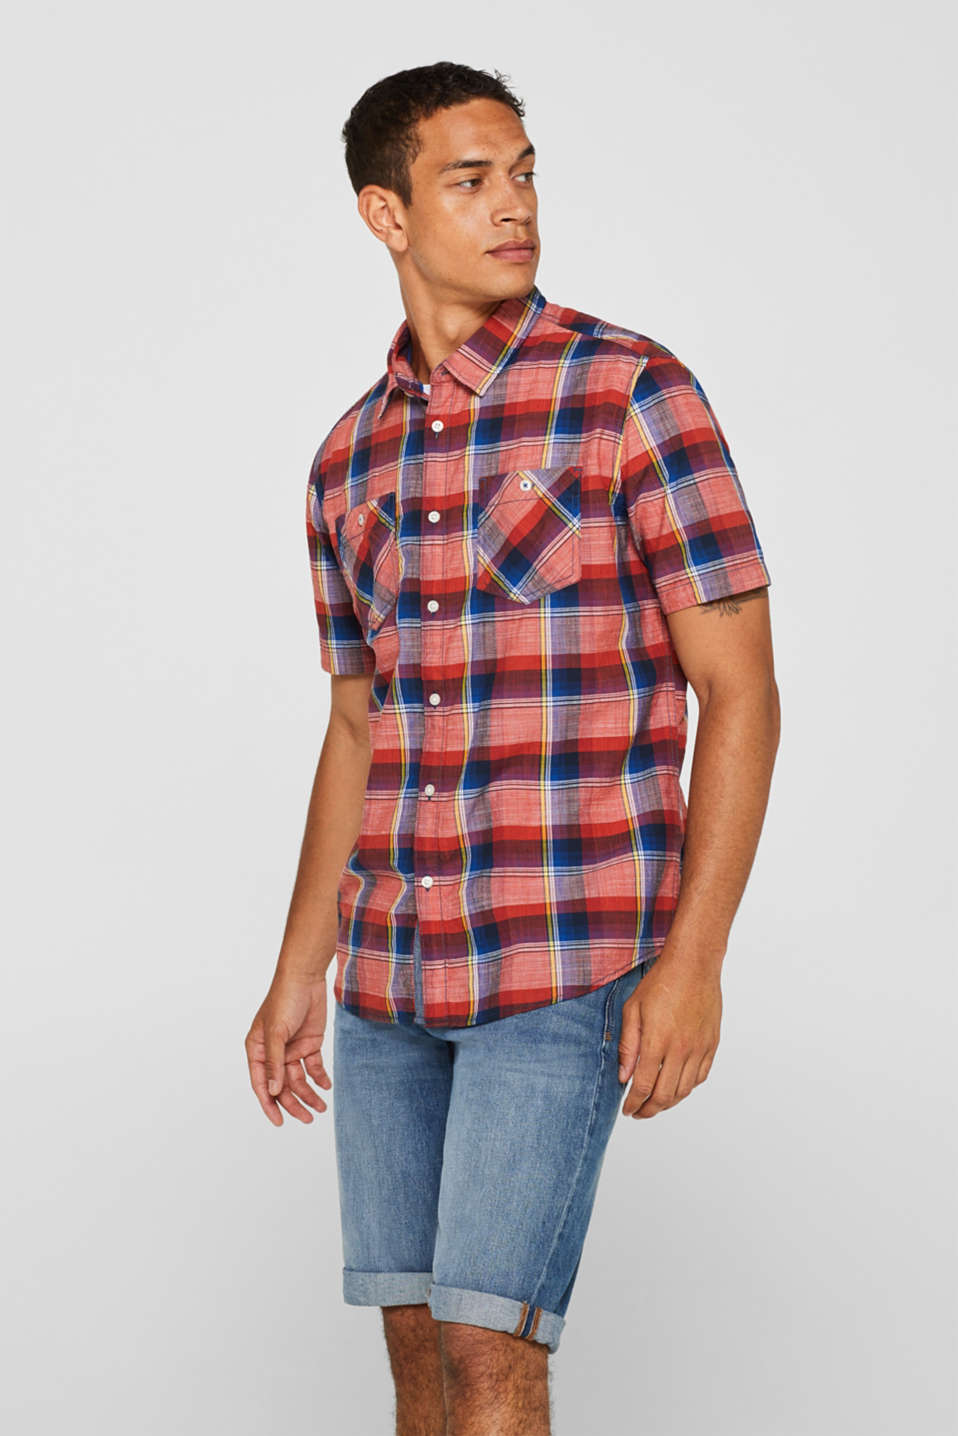 edc - Short sleeve shirt with a check pattern, 100% cotton